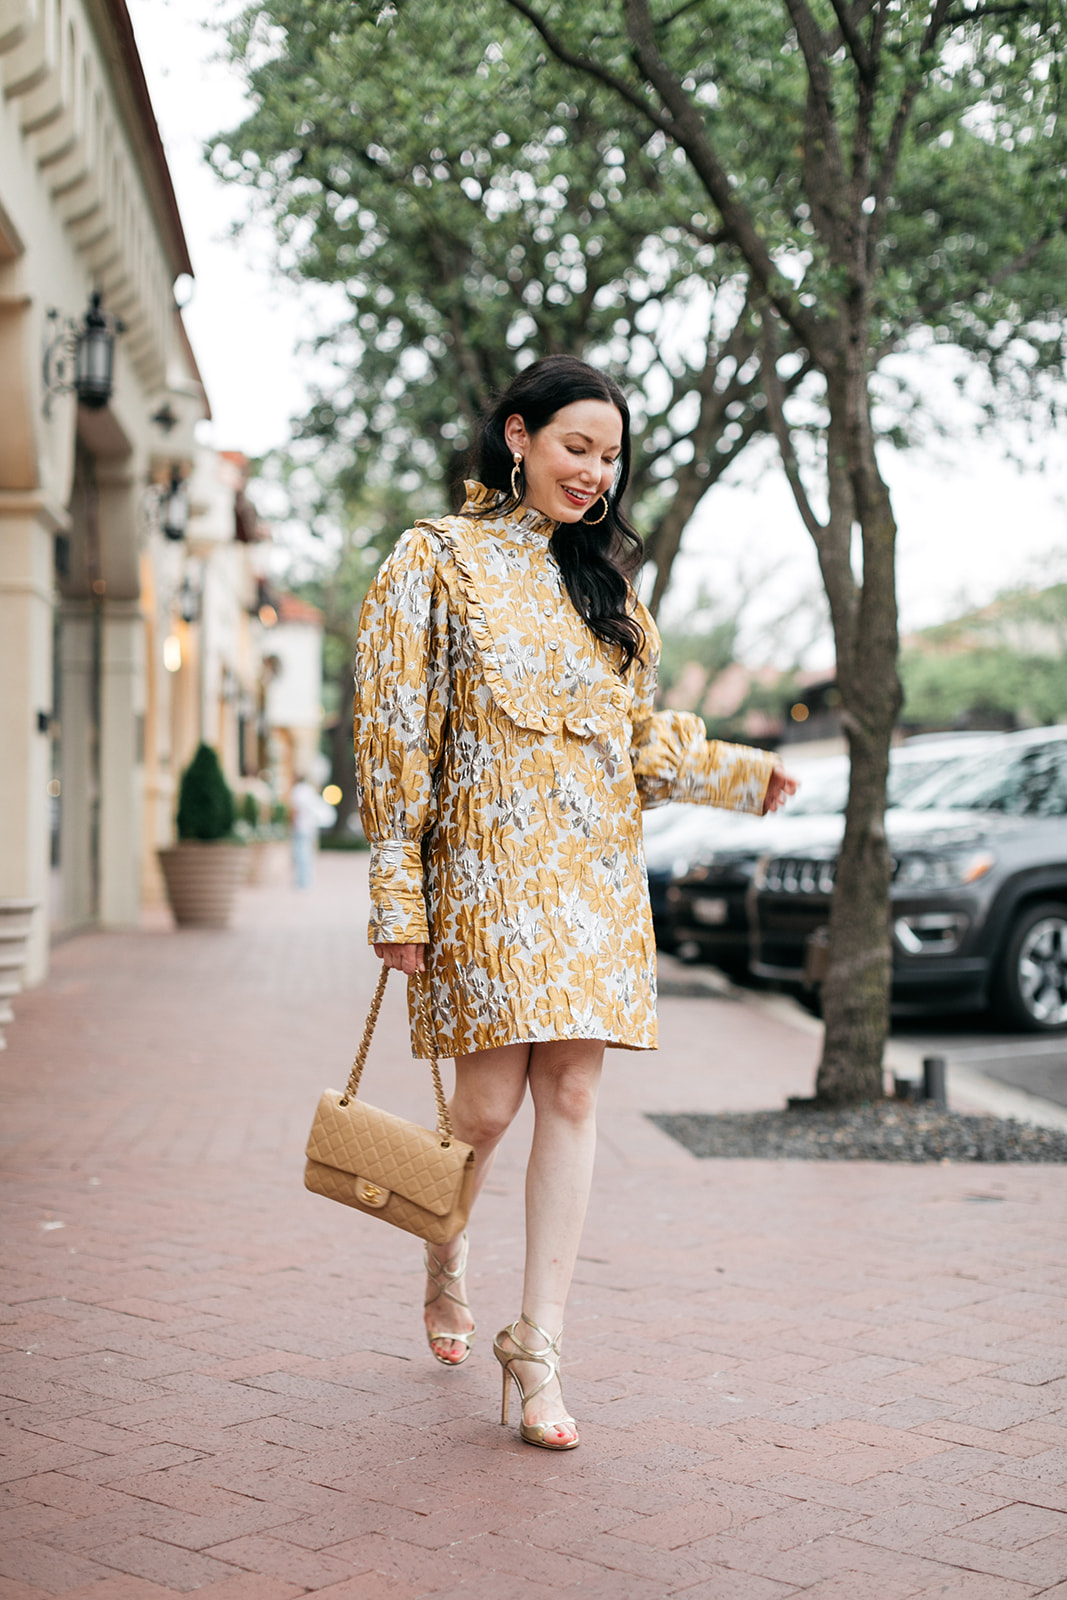 Sister Jane Cocktail Dress, Chanel bag, Jimmy Choo sandals, Ettika earrings, Highland Park Village Dallas   Cocktail Dress by popular Dallas fashion blog, Pretty Little Shoppers: image of a woman walking outside on a brick paved sidewalk and wearing a Sister Jane Cocktail Dress, Chanel Bag, Jimmy Choo Sandals, and Ettika earrings.